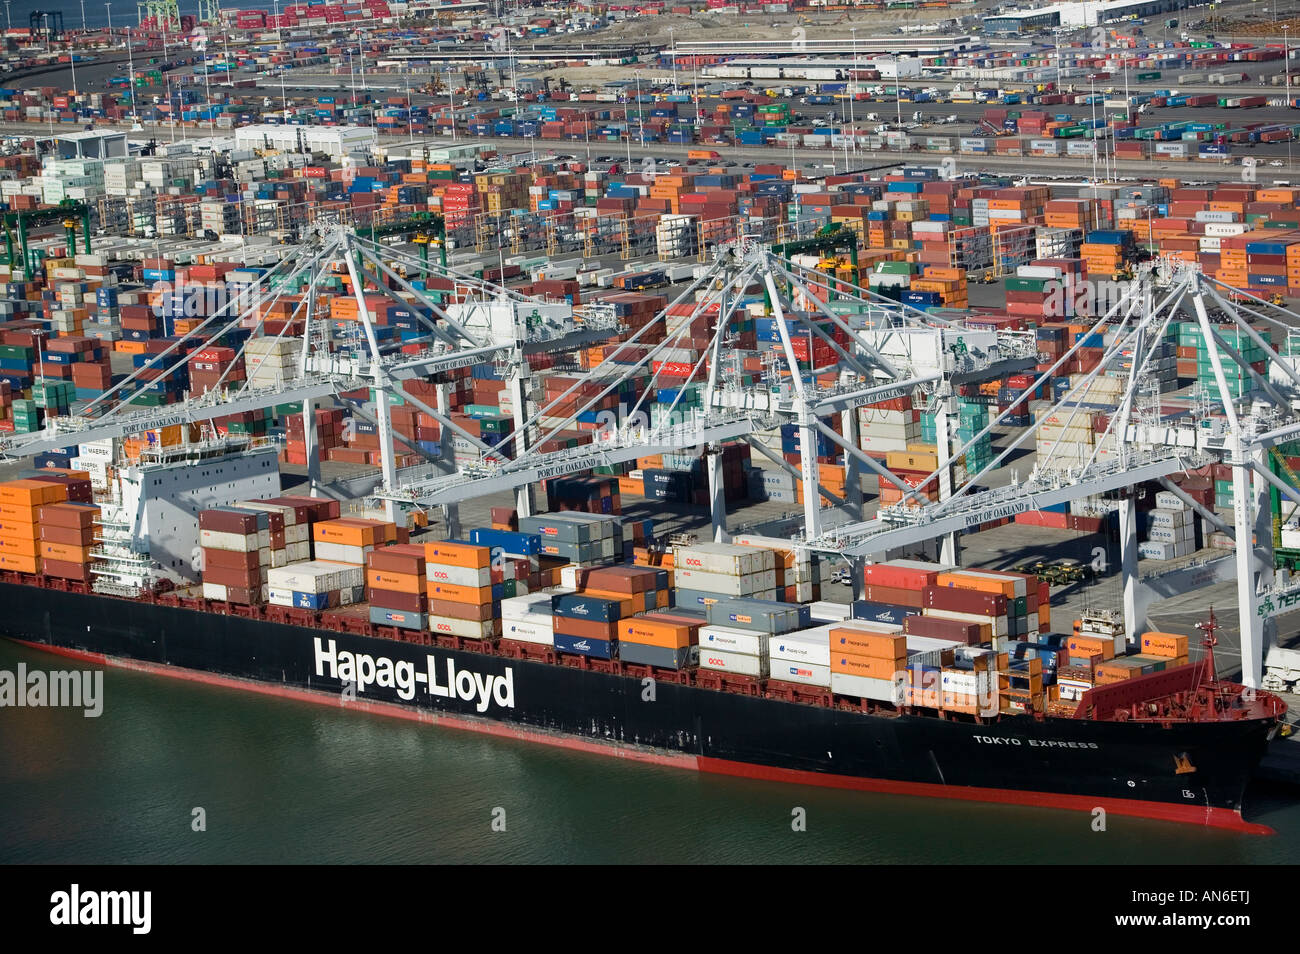 aerial view of Port of Oakland, Hapag-Lloyd containership containers from above - Stock Image